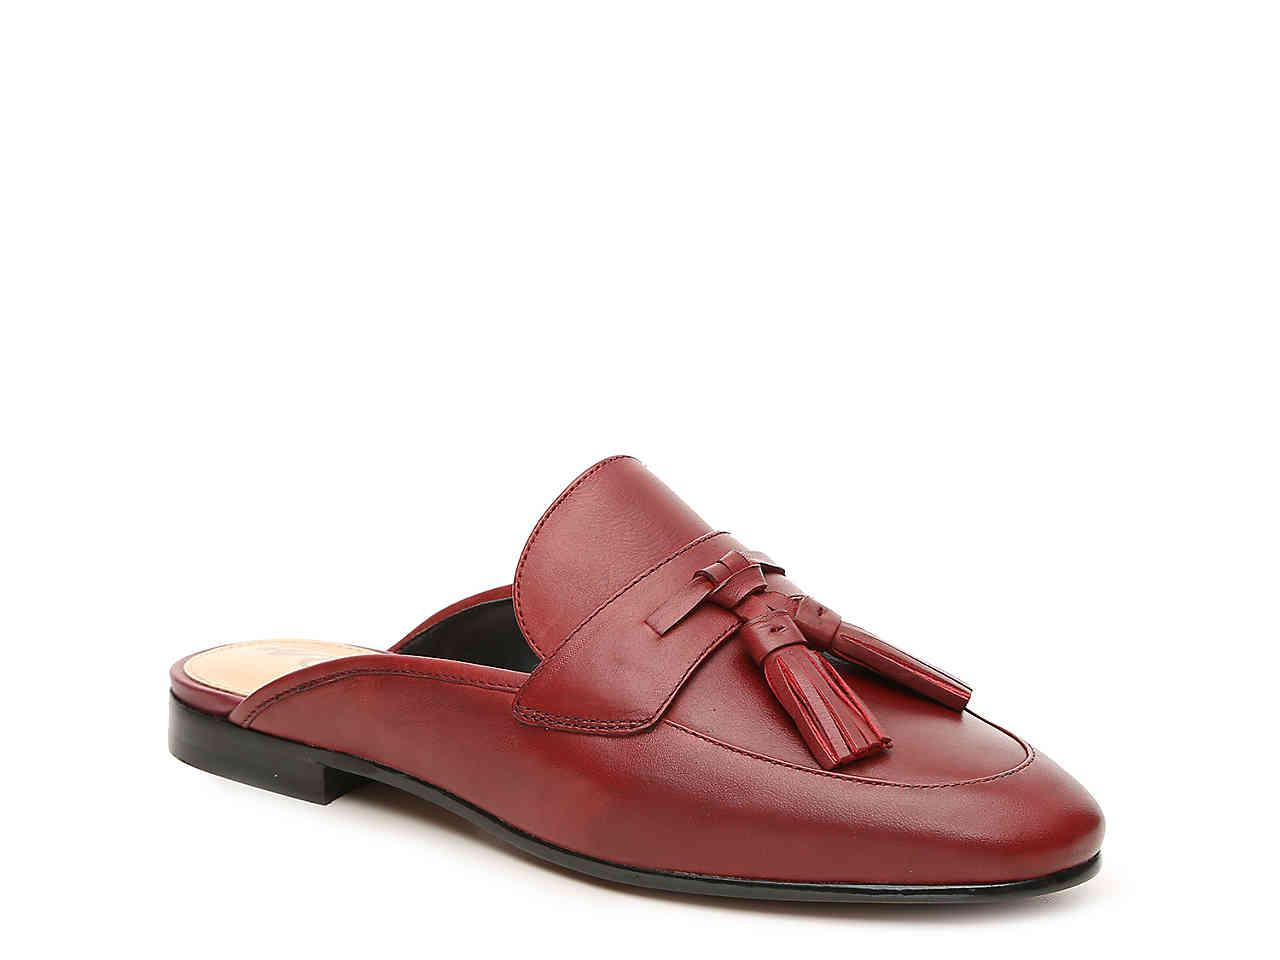 8f002acdace4 Lyst - Sam Edelman Slippers in Red - Save 9%